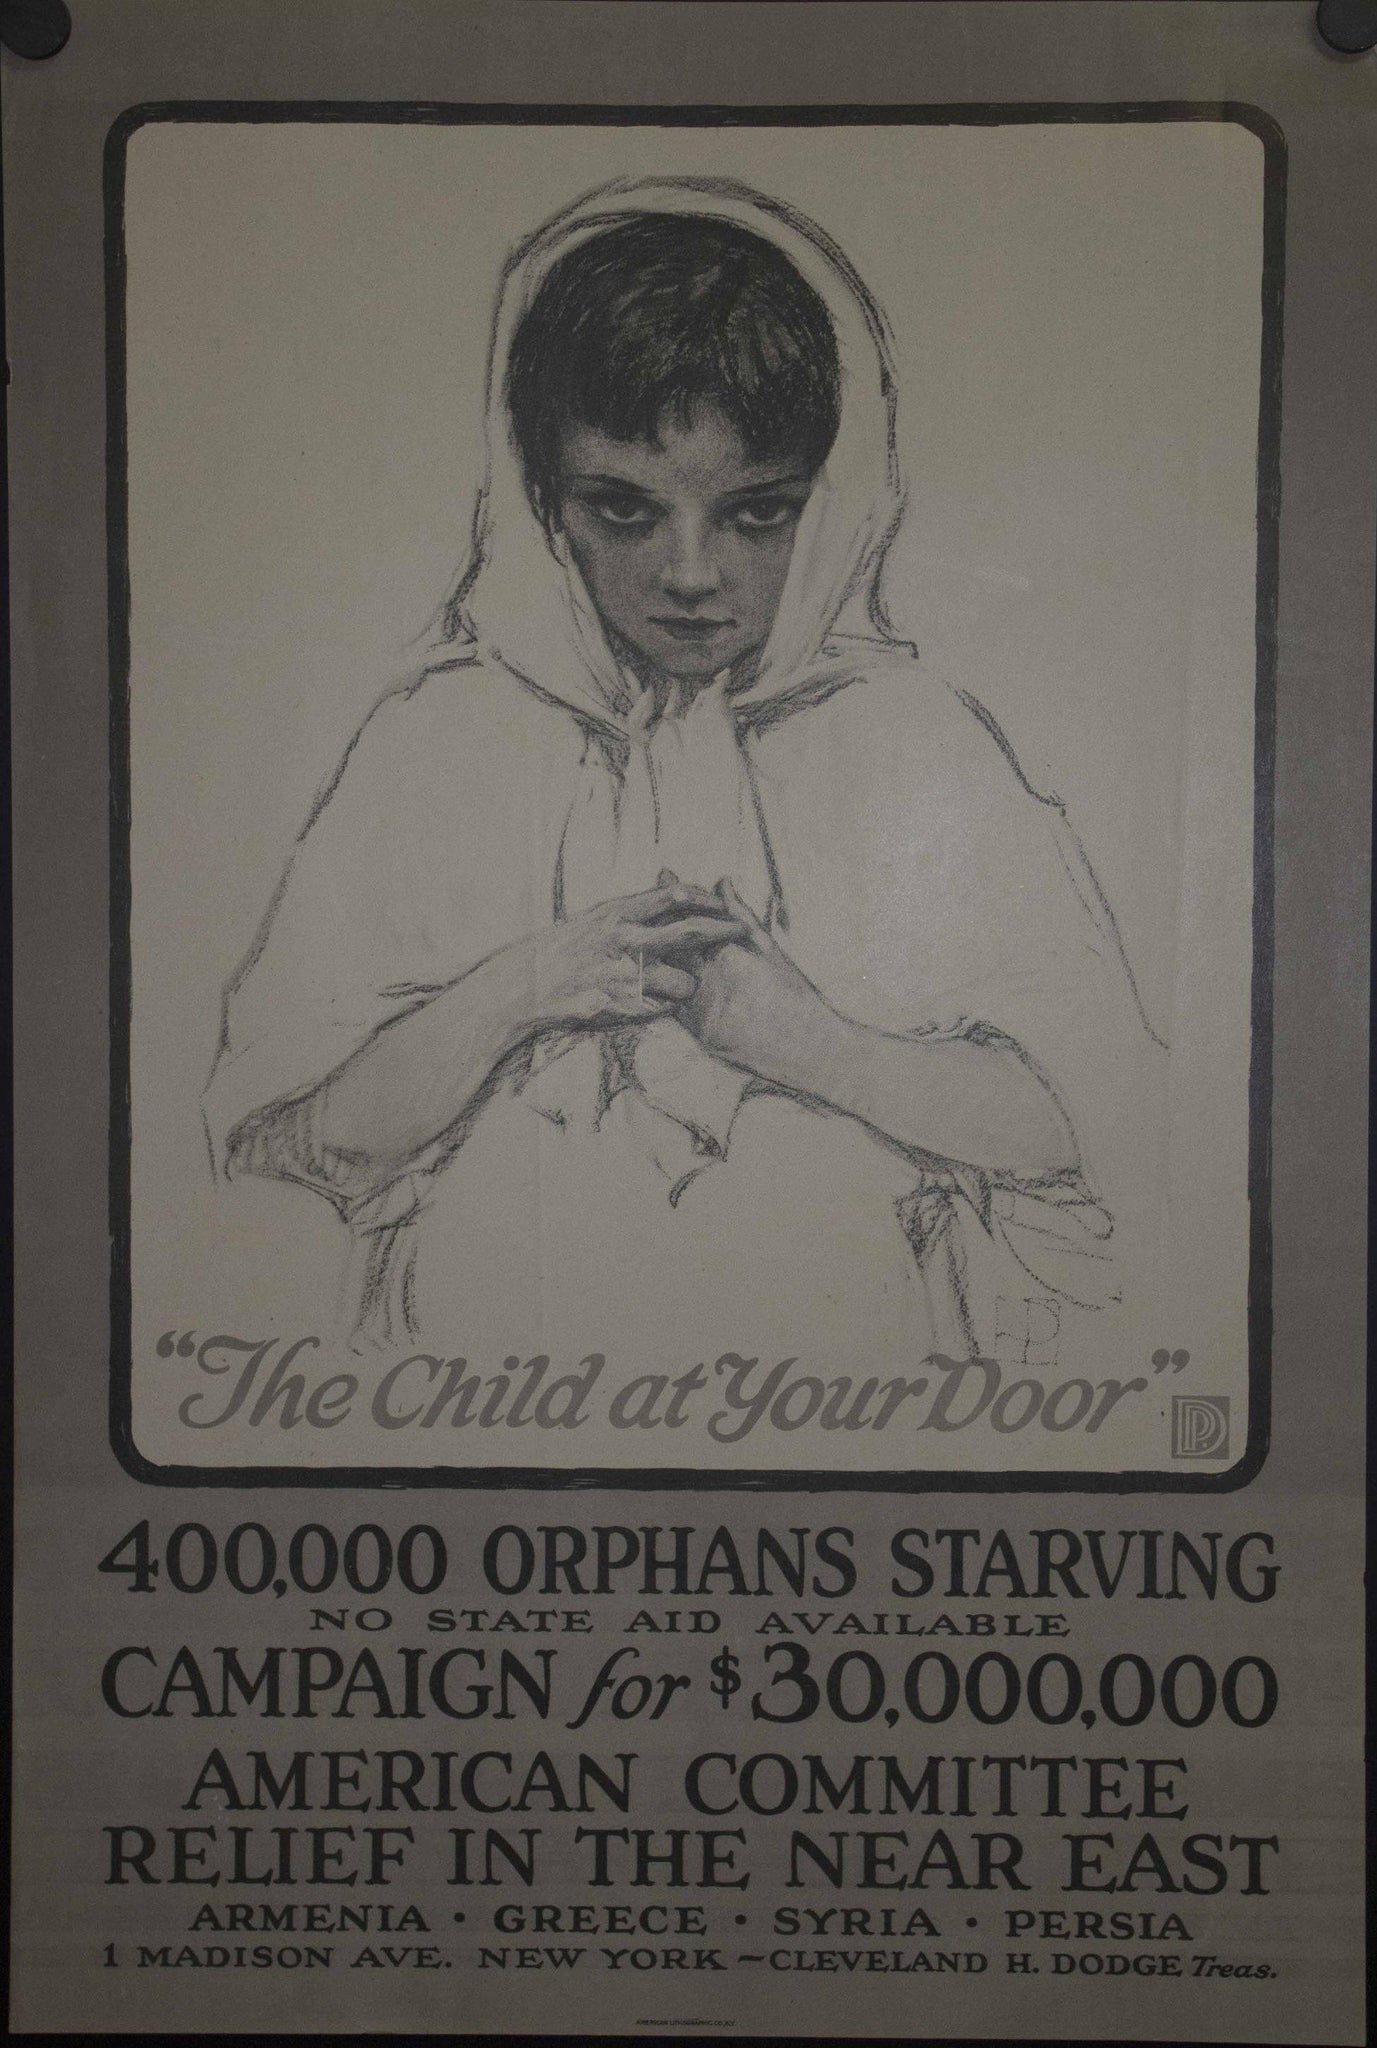 1917 The Child At Your Door Near East Relief